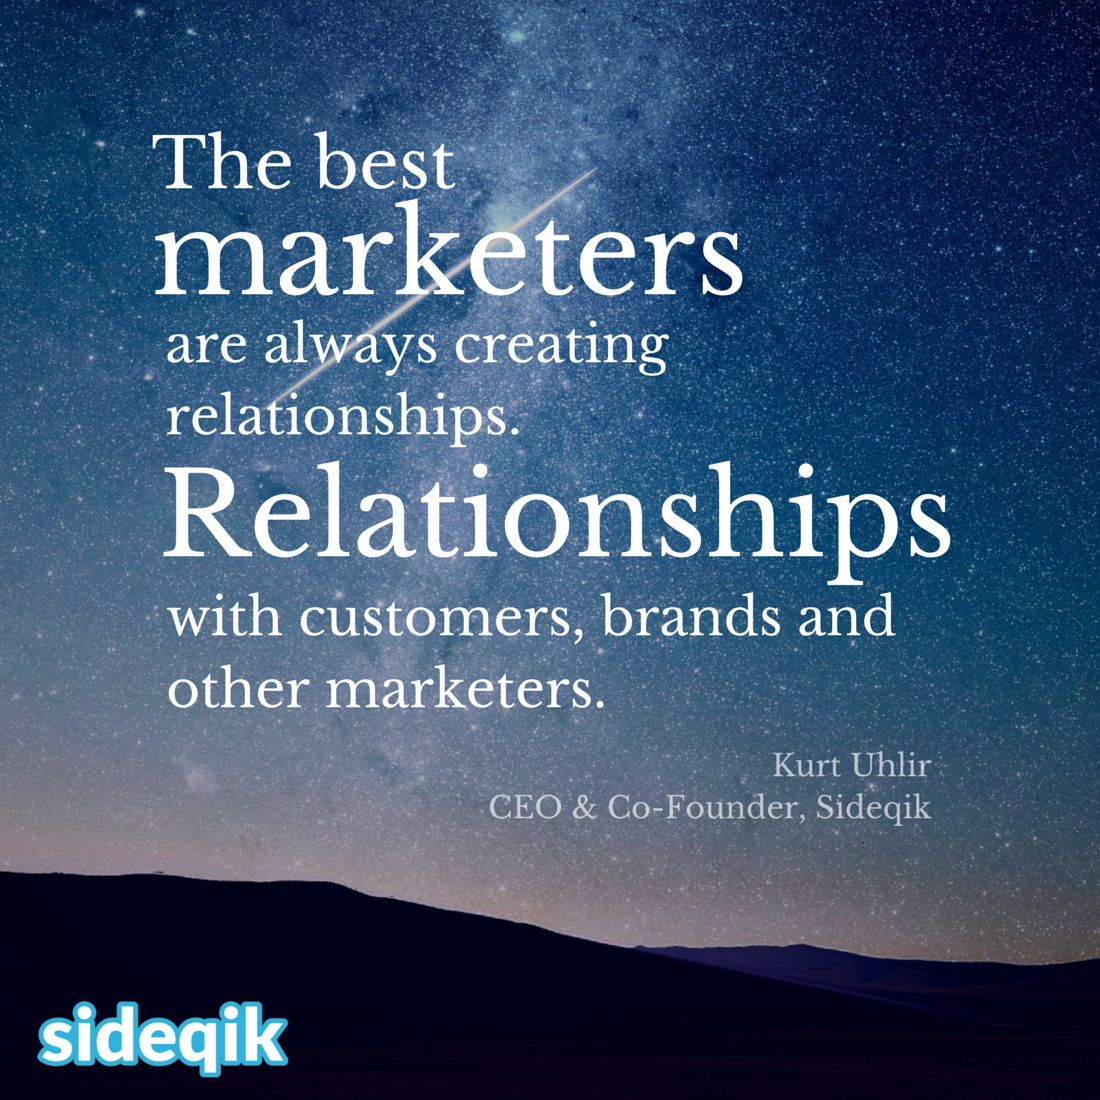 37 Marketing Quotes Every Marketer Should Hold Close to